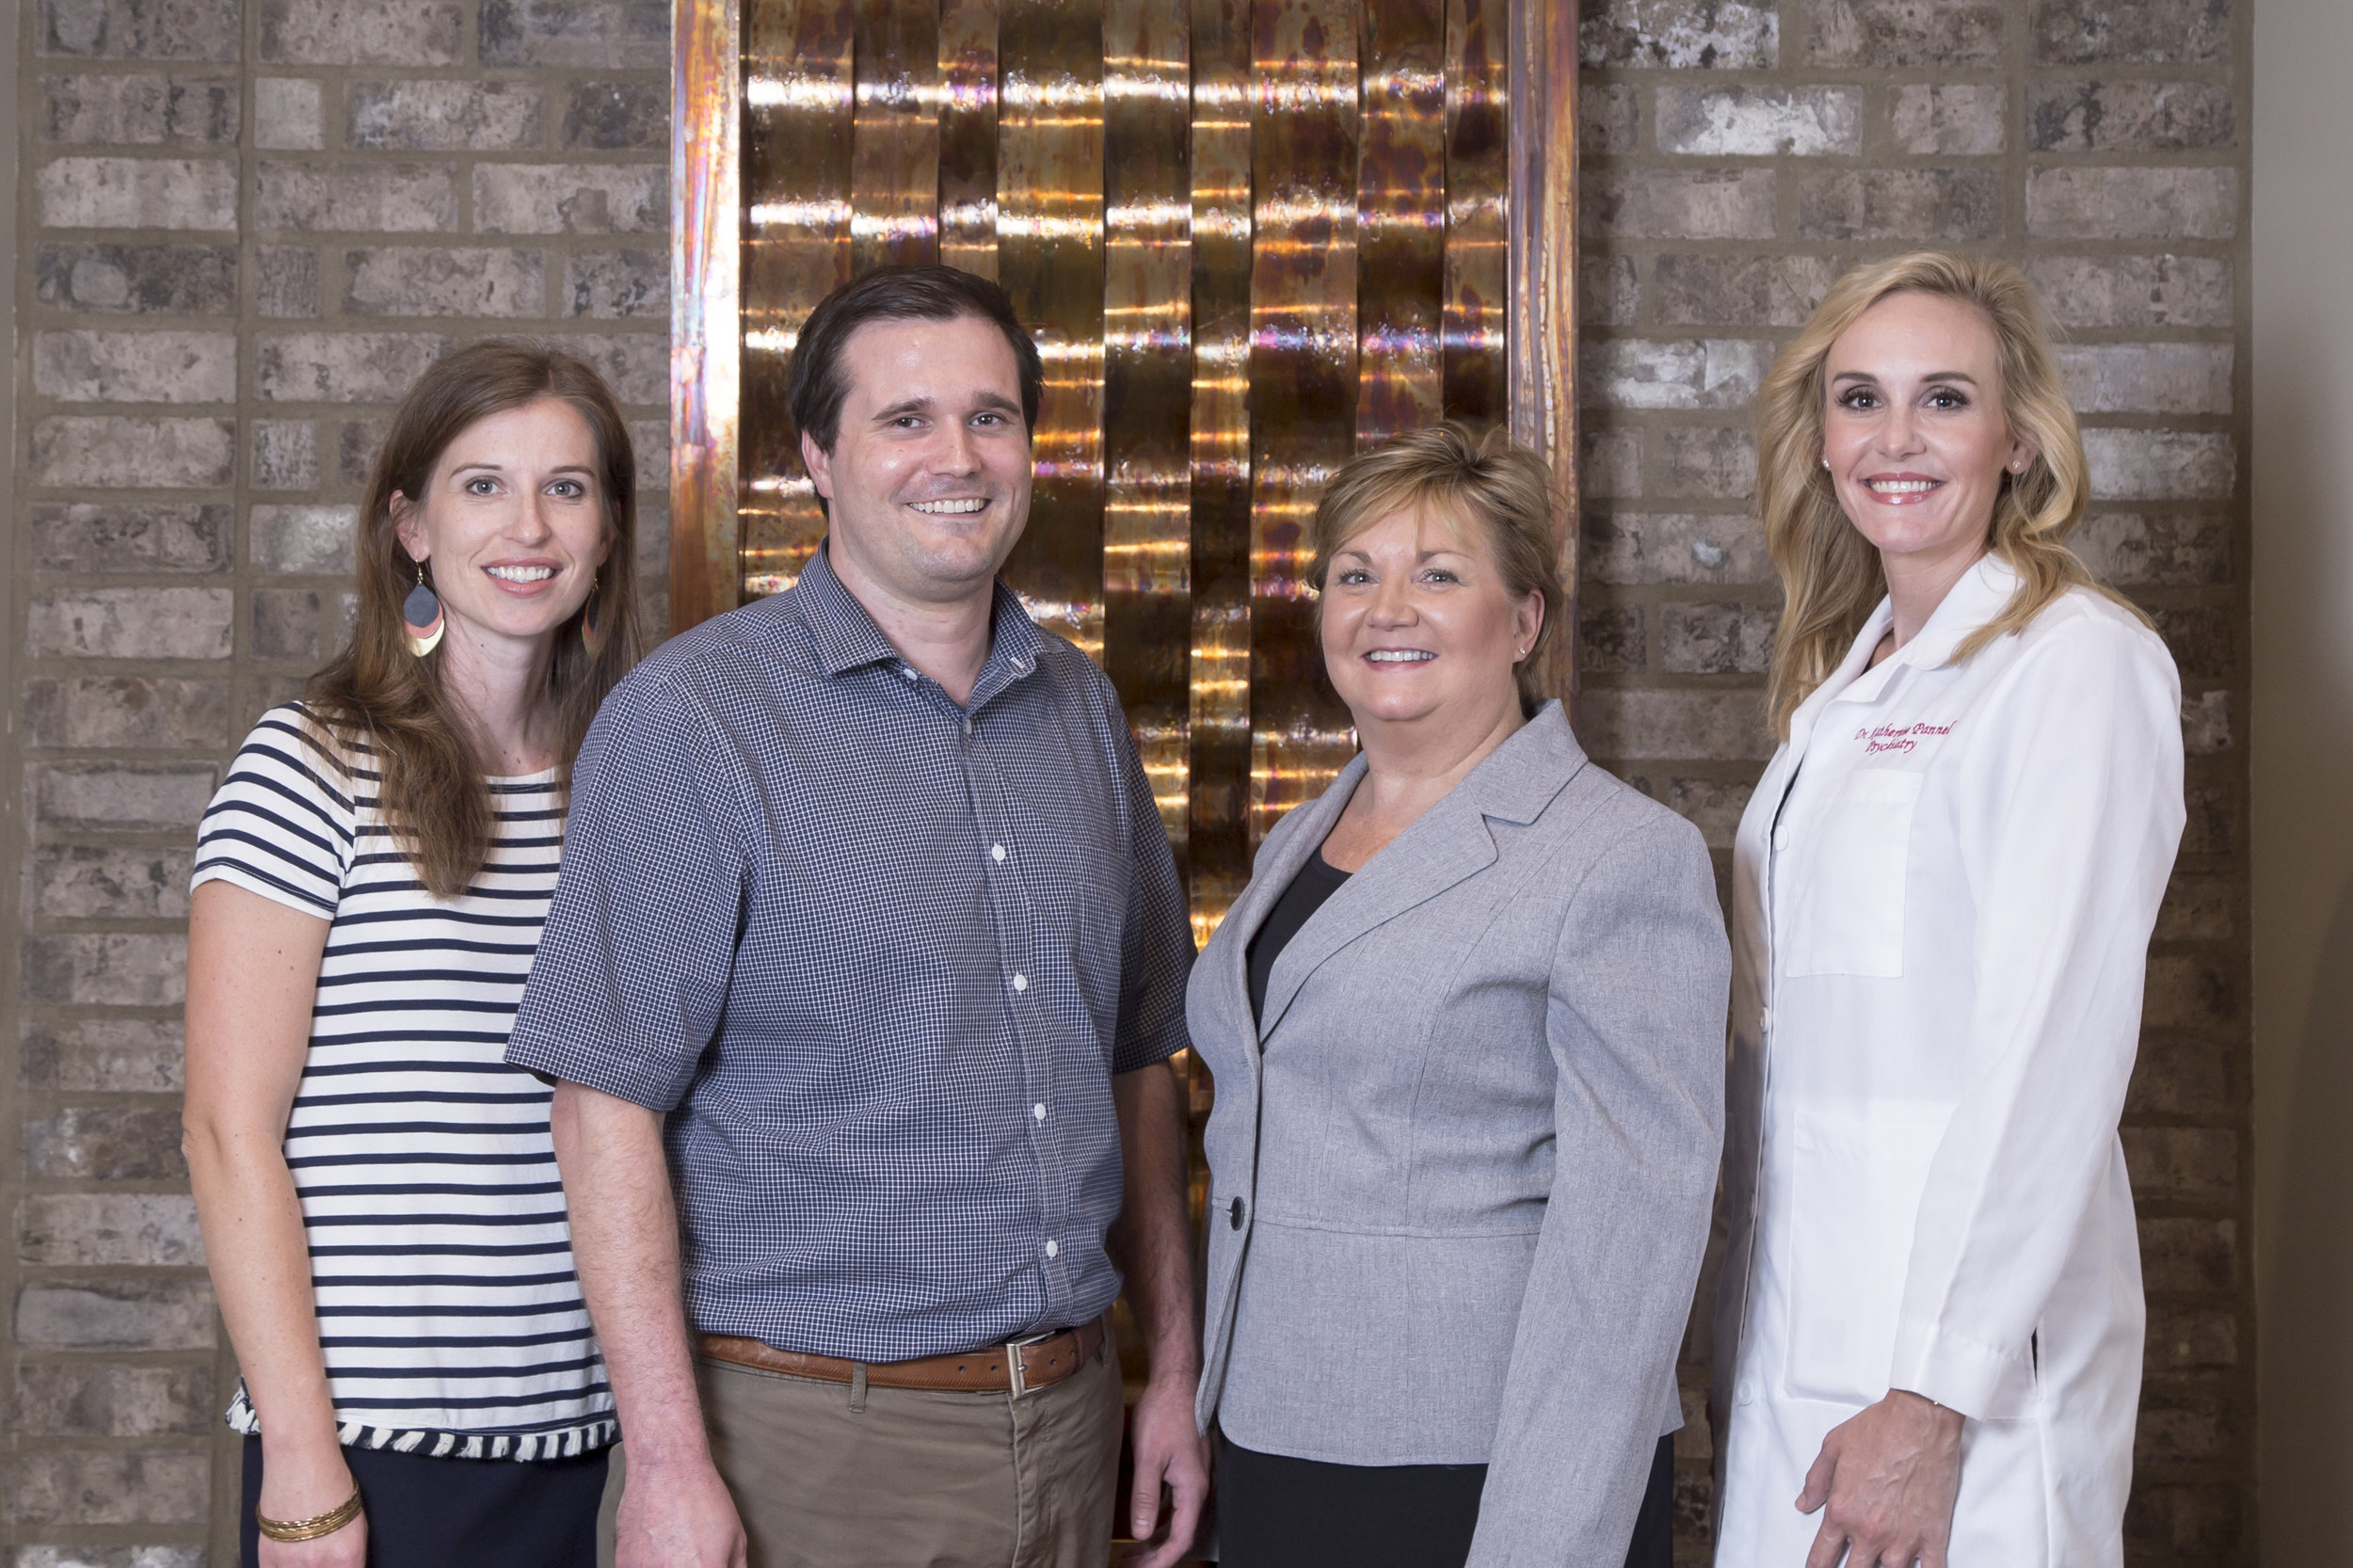 The staff of Right Track Medical Group includes Emily Grace Ames, LPC; Clark Hunt, LPC; Cindy Seal, Practice Administrator; and Dr. Katherine Pannel, DO, Psychiatrist and Medical Director.